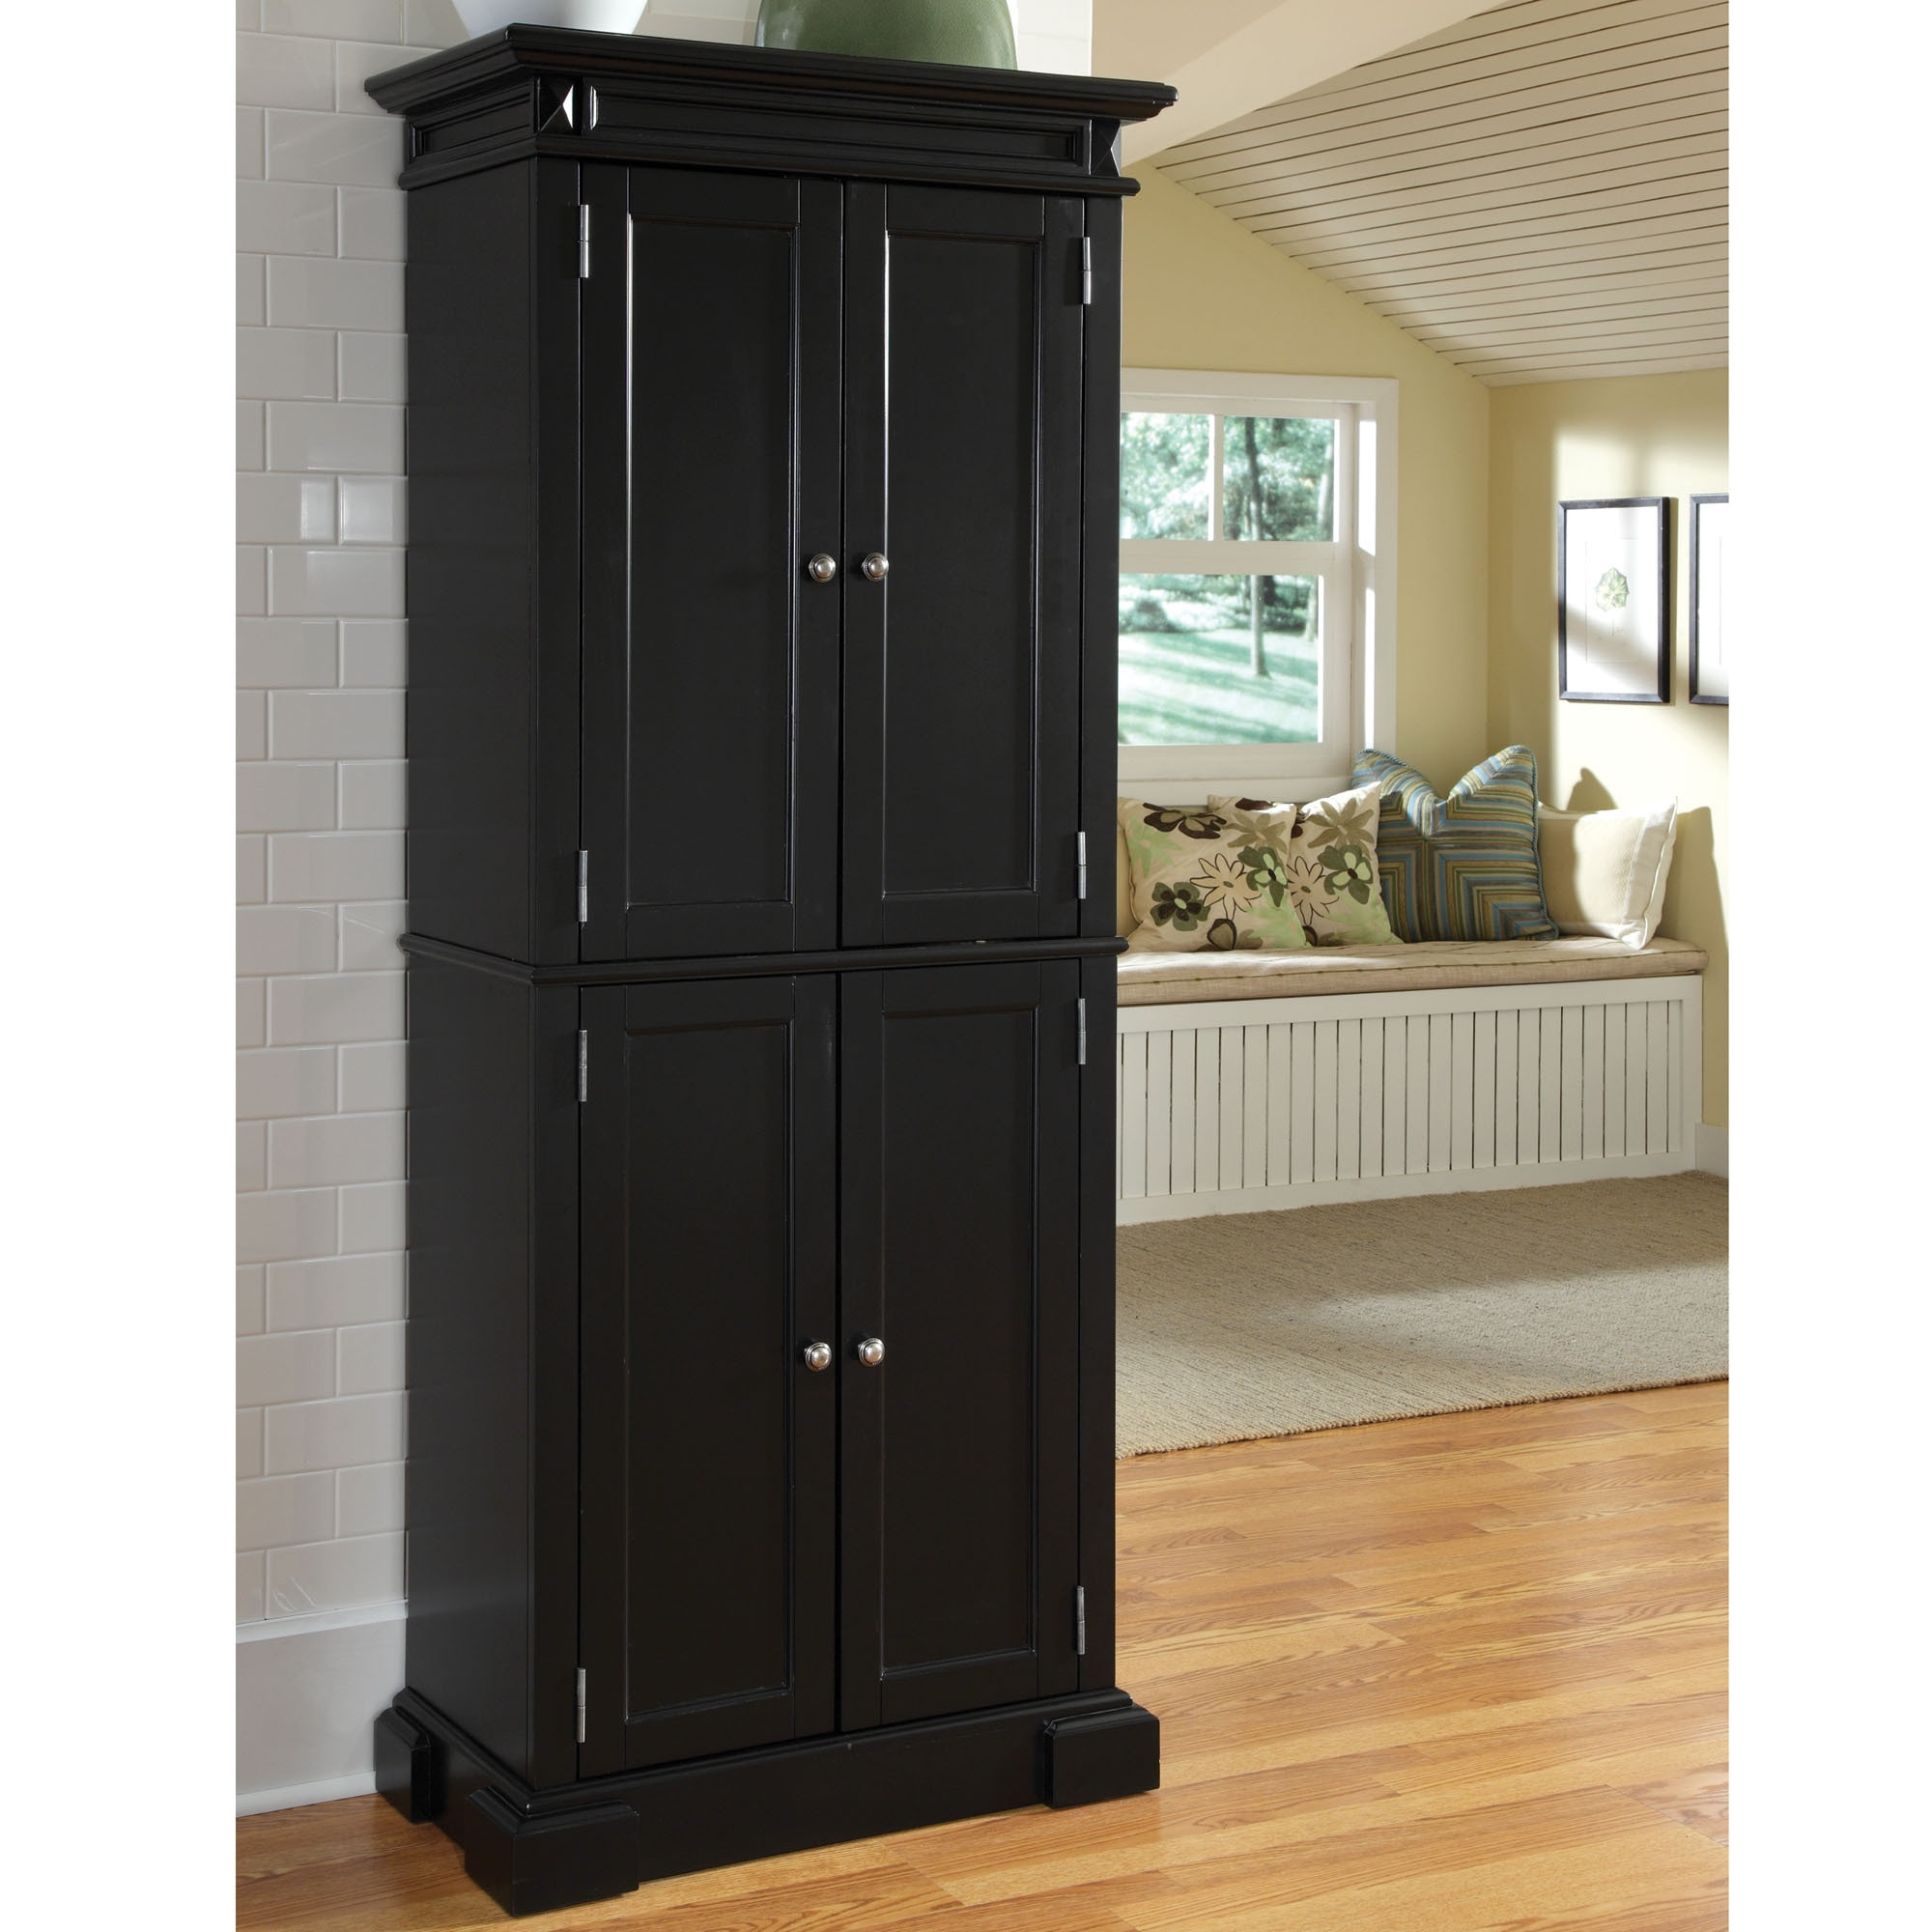 Black Wood Storage Cabinets With Doors